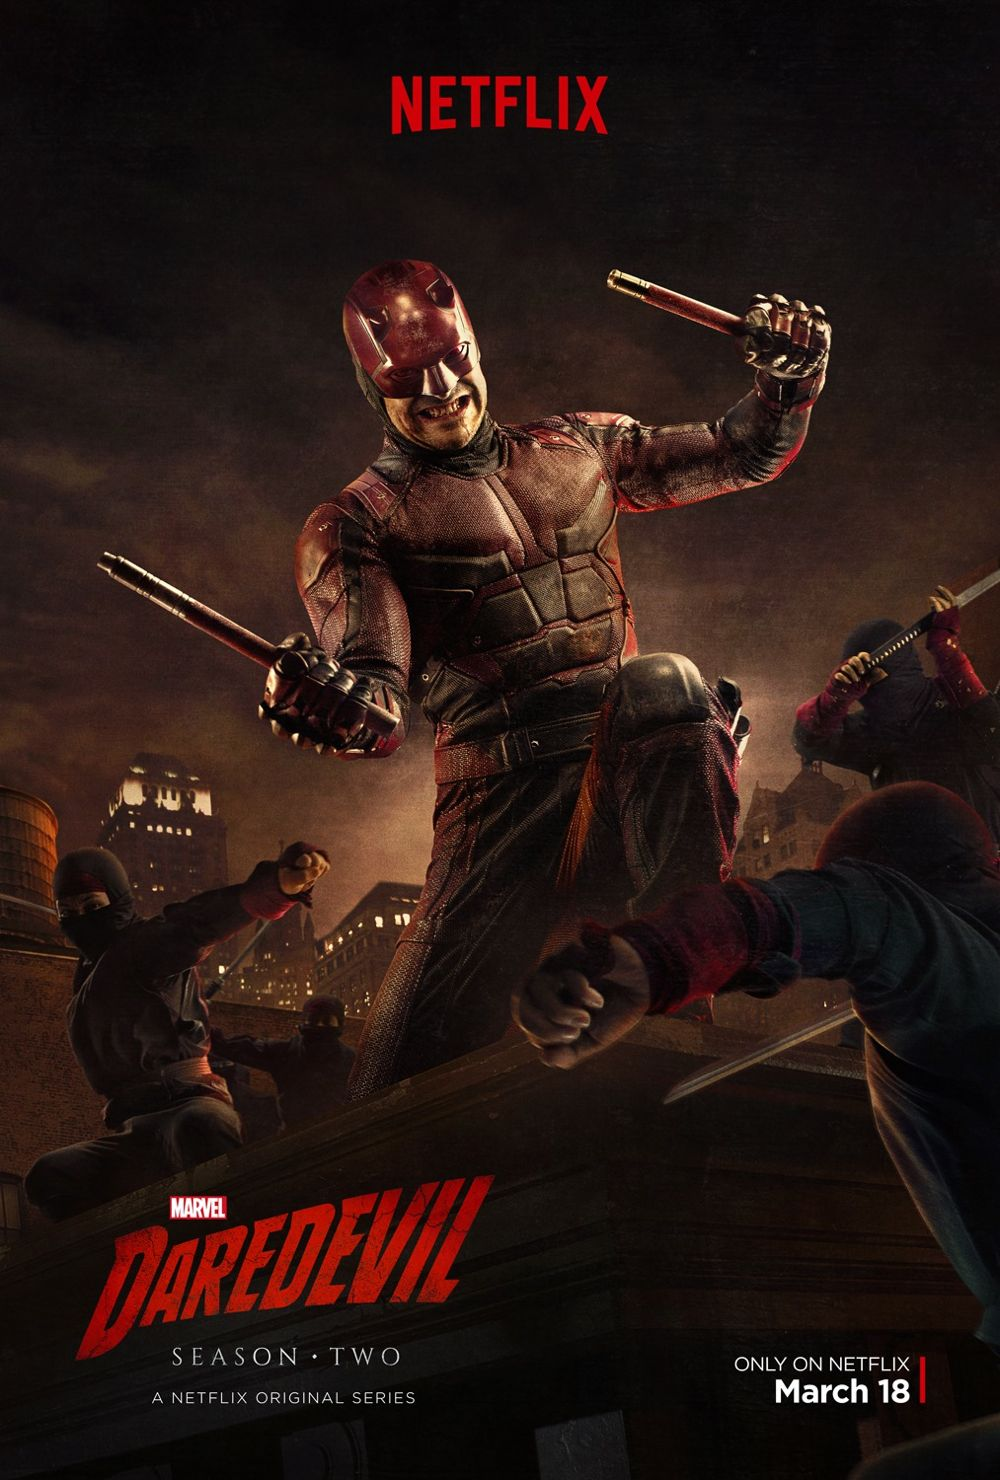 Daredevil Season 2 Poster3